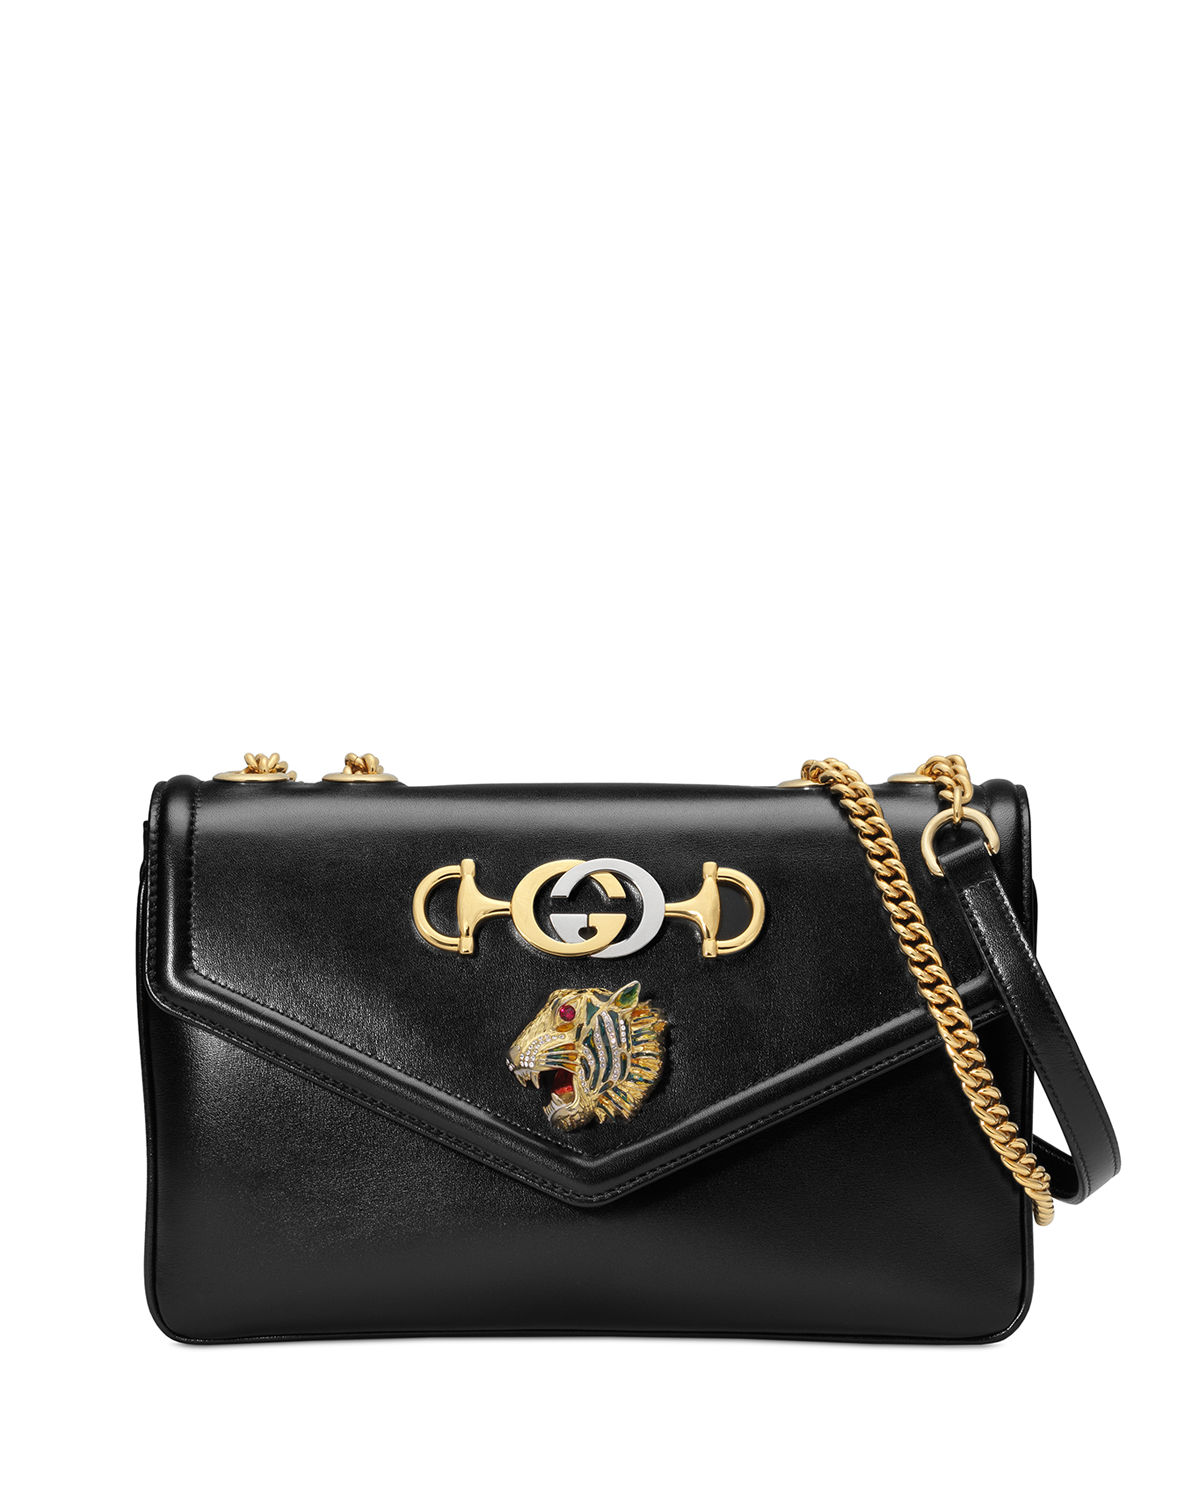 f84057a9c07f Gucci Linea Rajah Medium Leather Shoulder Bag